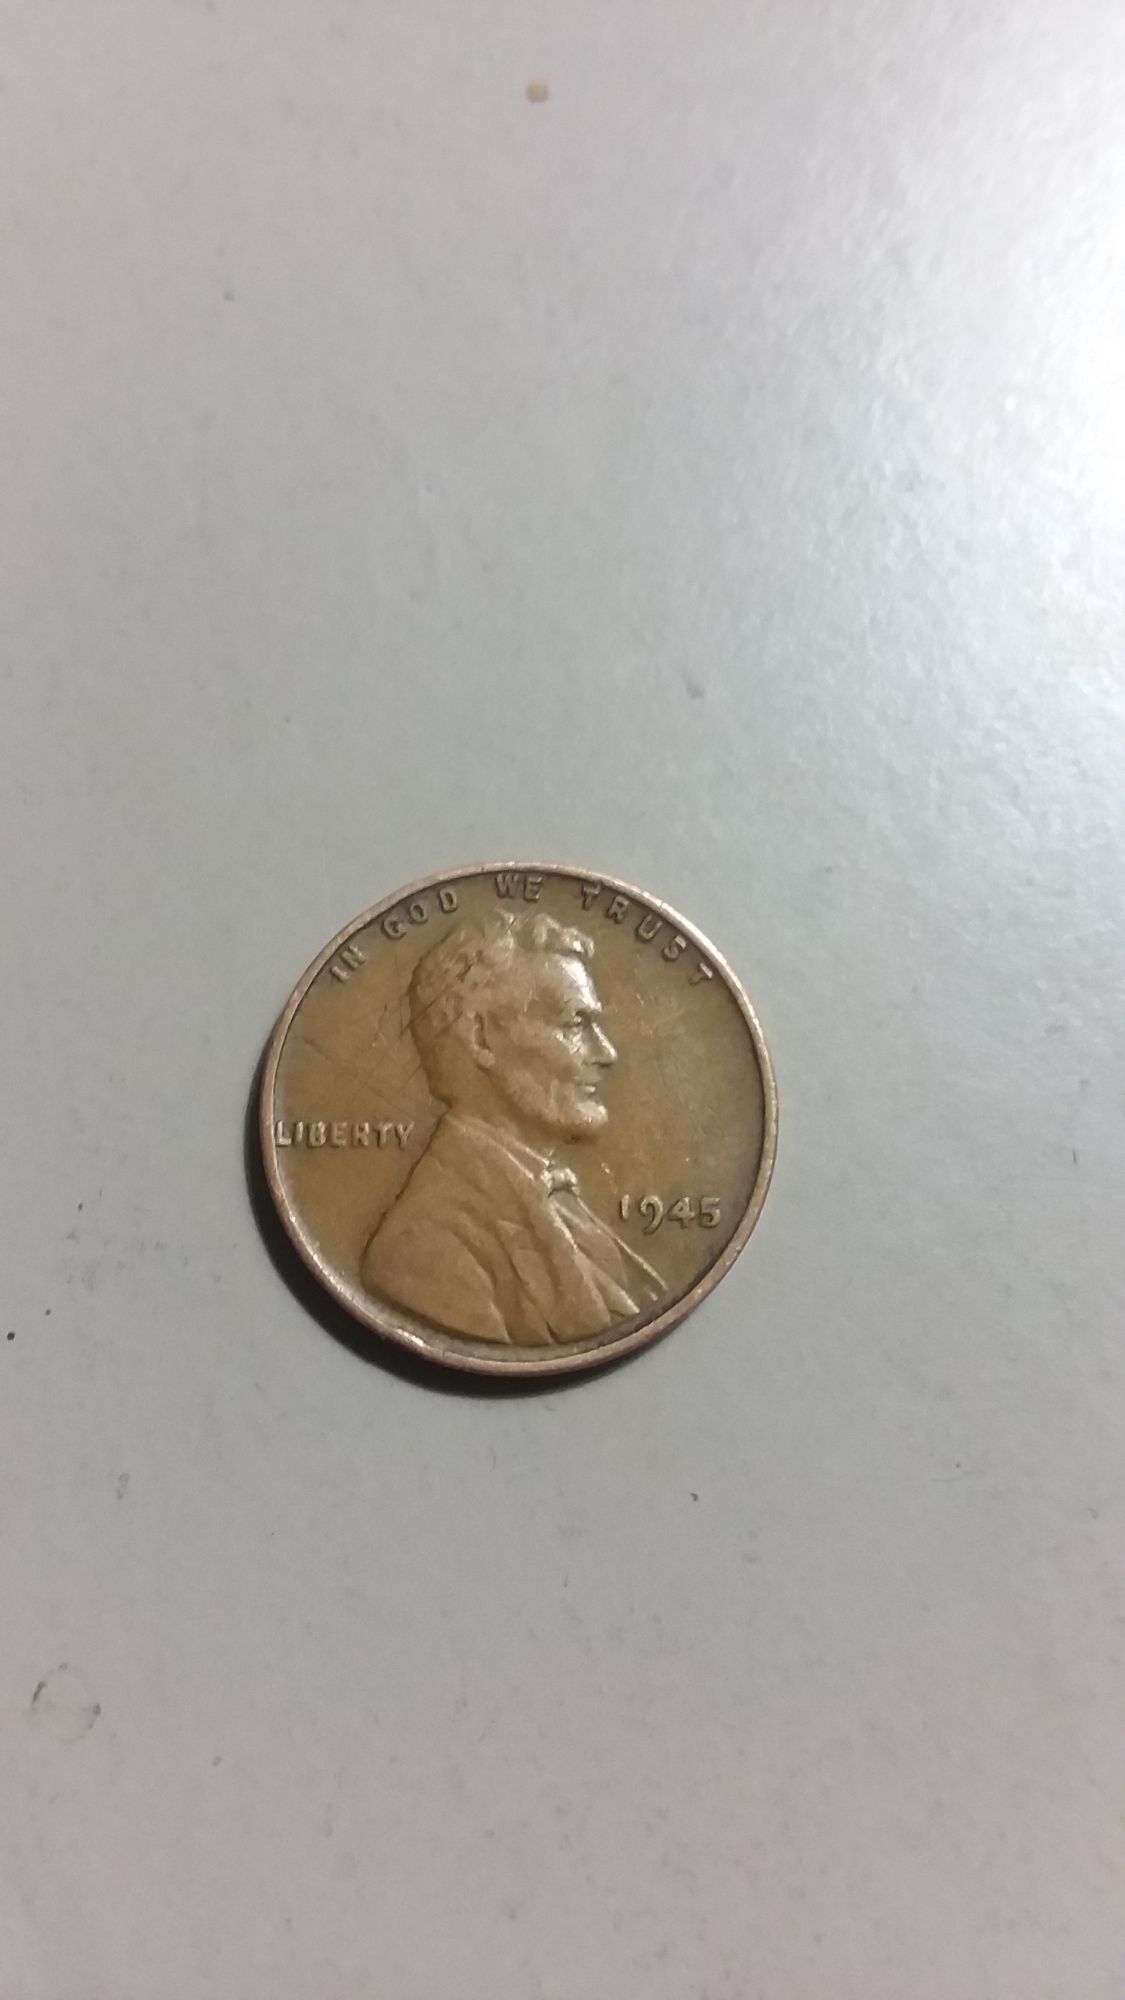 1945 wheat penny appraisal - Newbie Coin Collecting